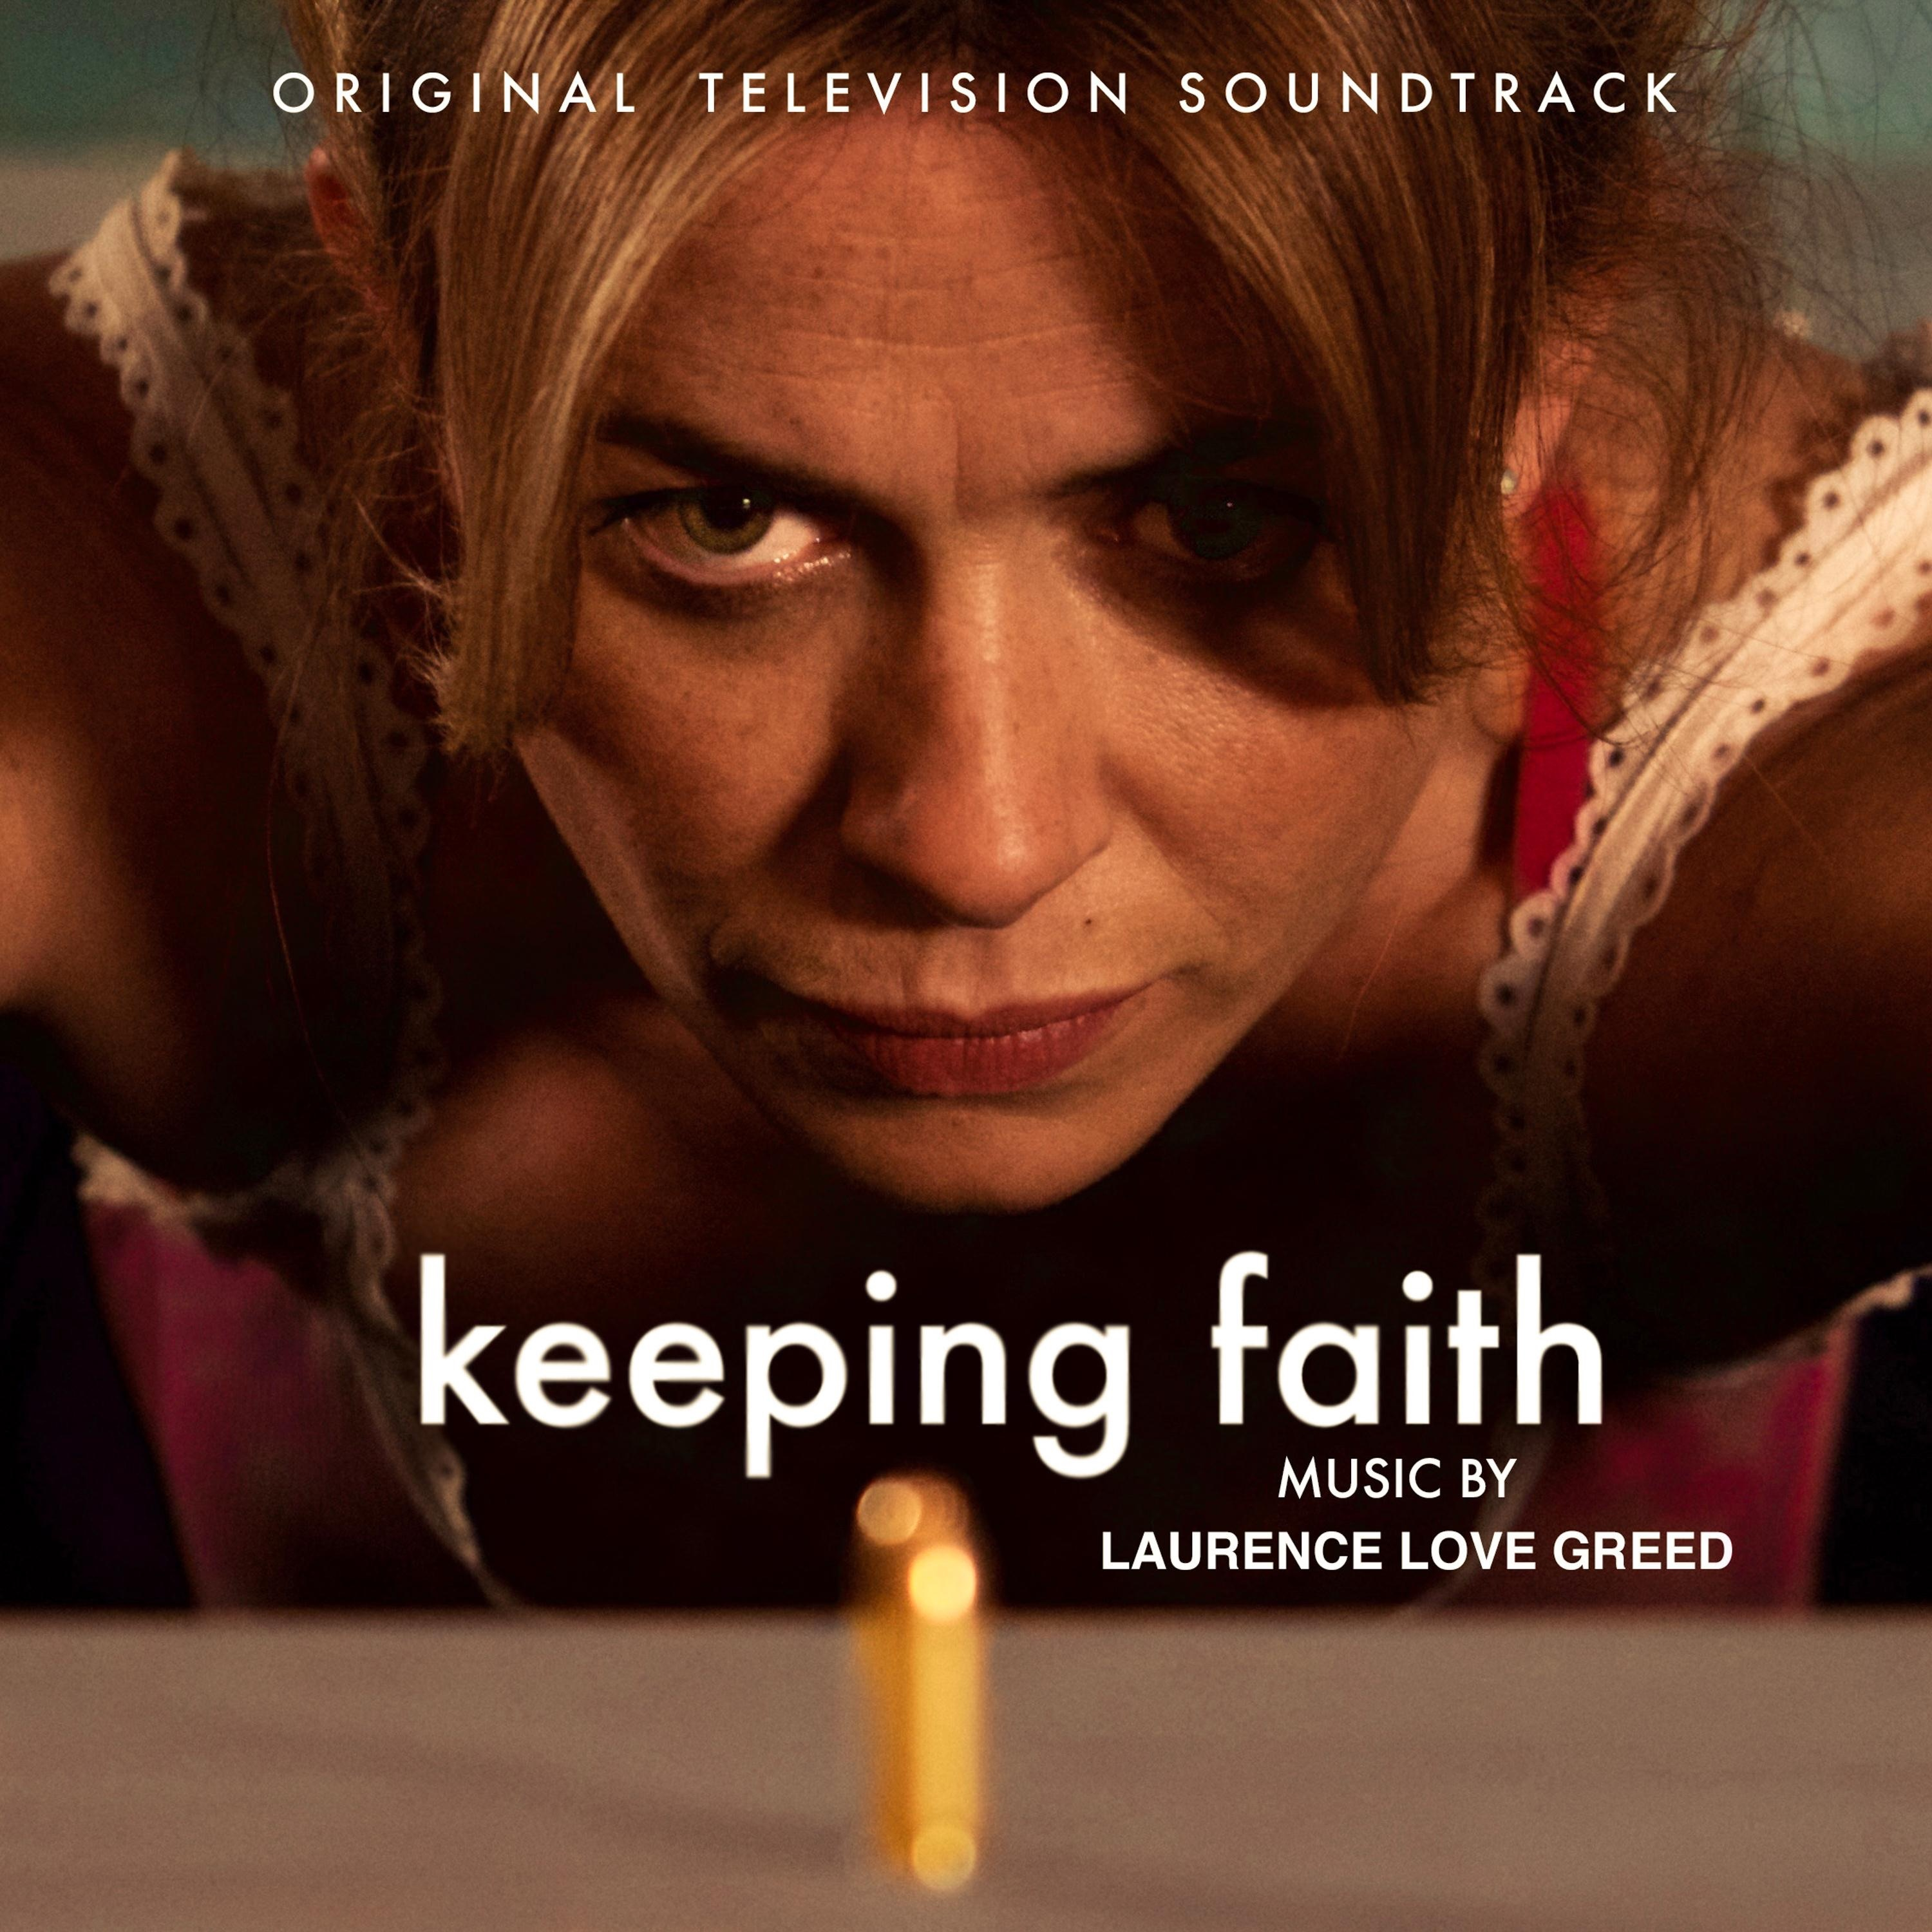 Songs about keeping faith